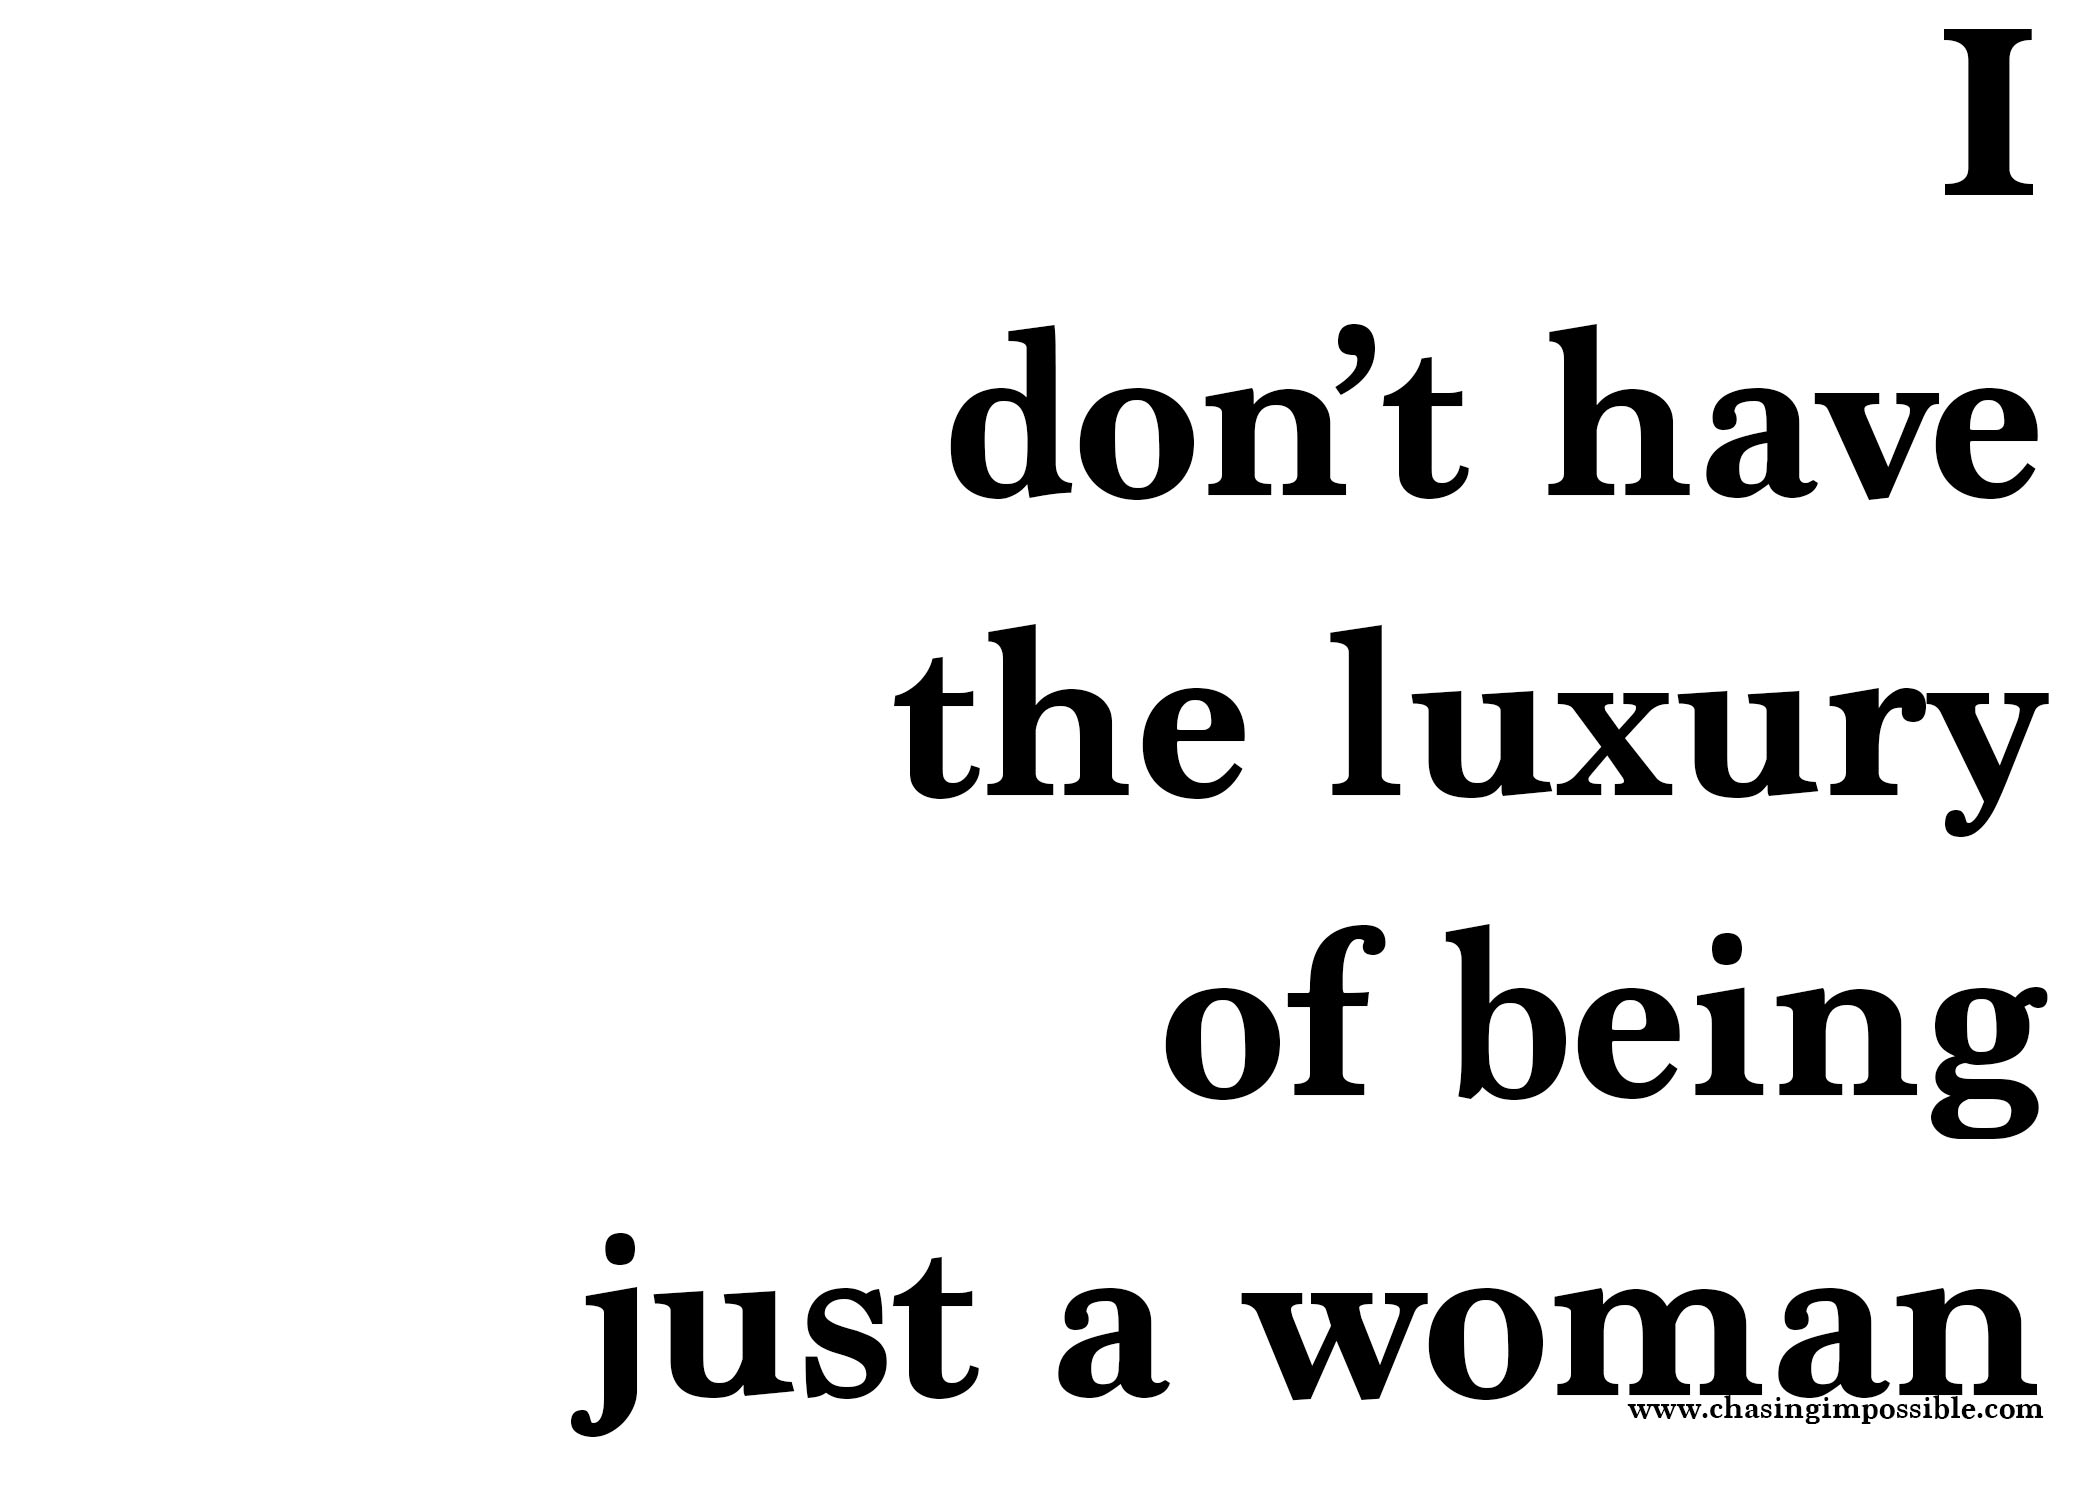 I don't have the luxury of being just a woman